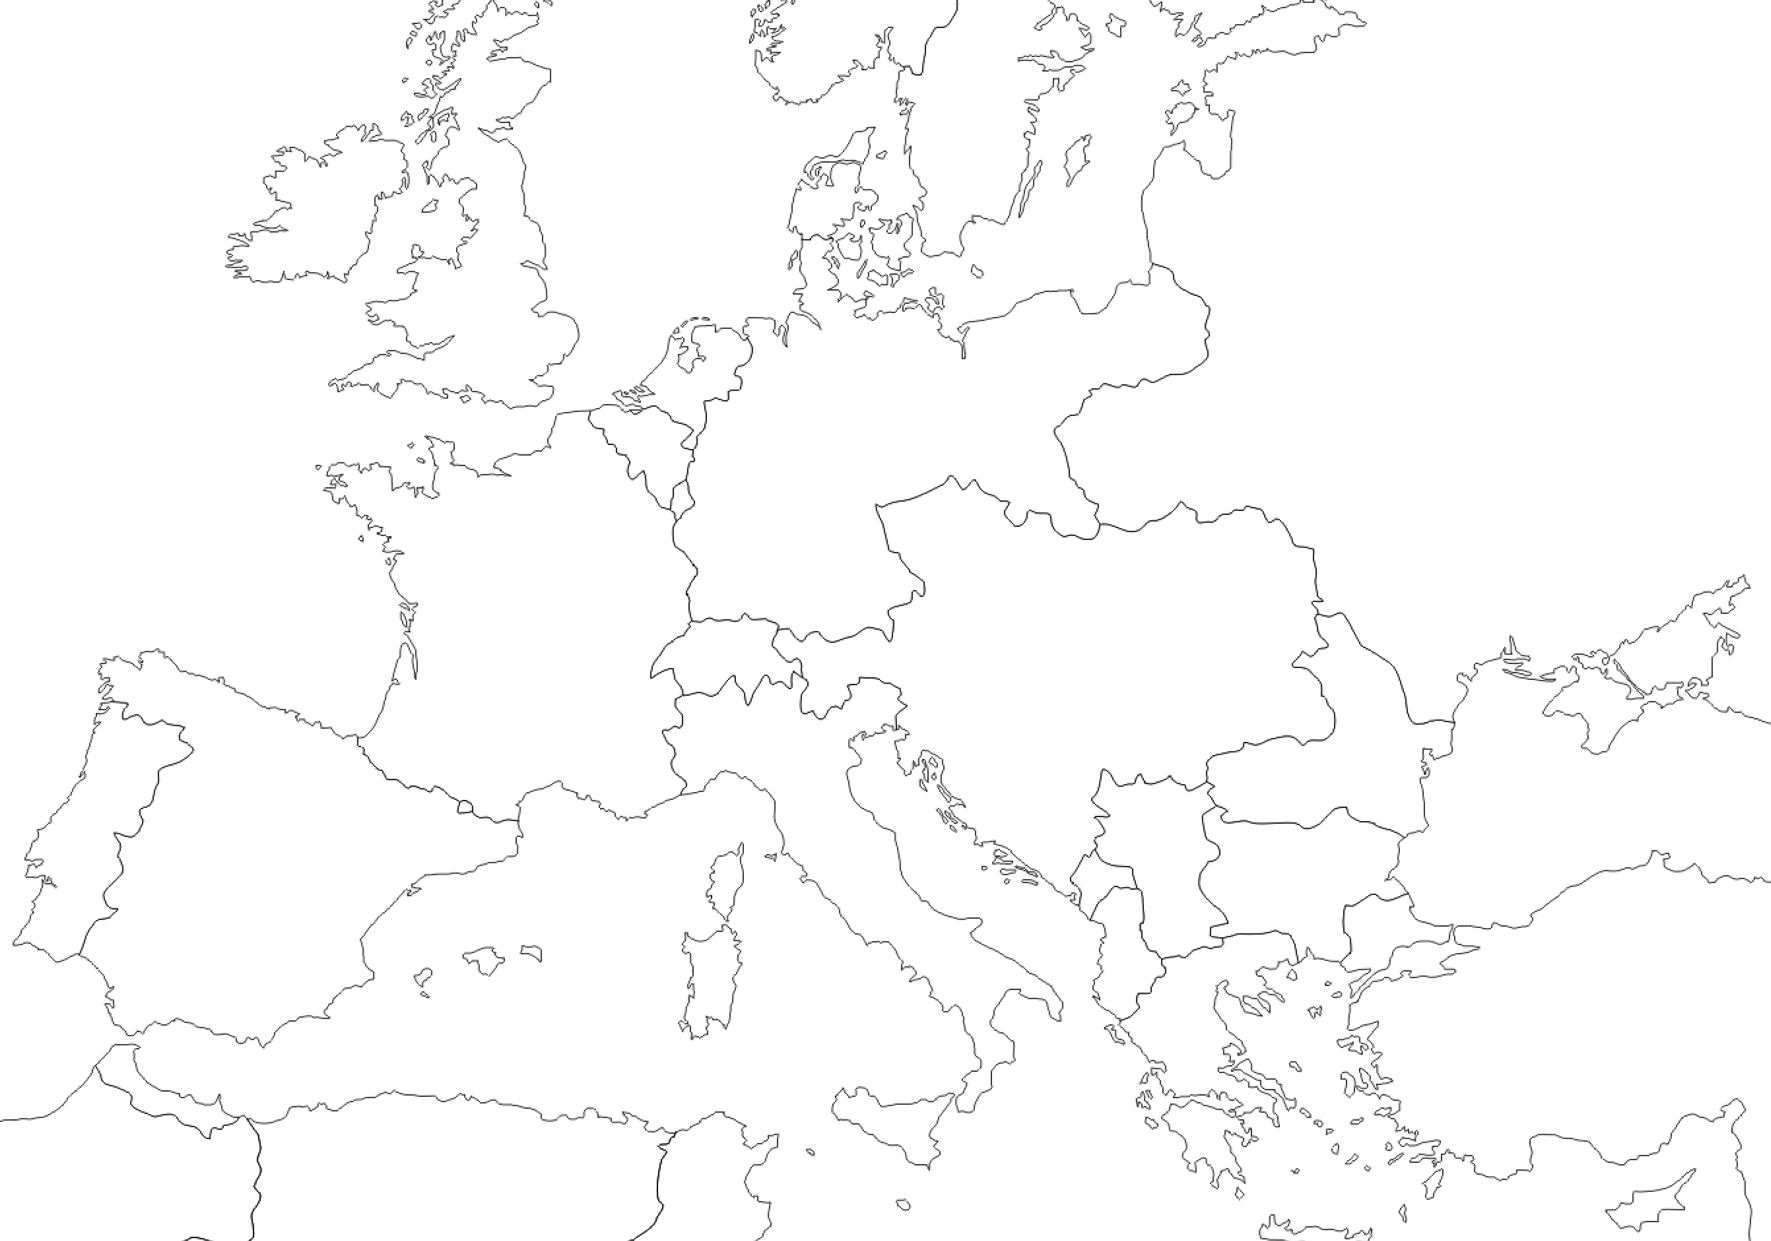 1914 - Outline map of Europe | WWI | Pinterest | Map, Europe and ...